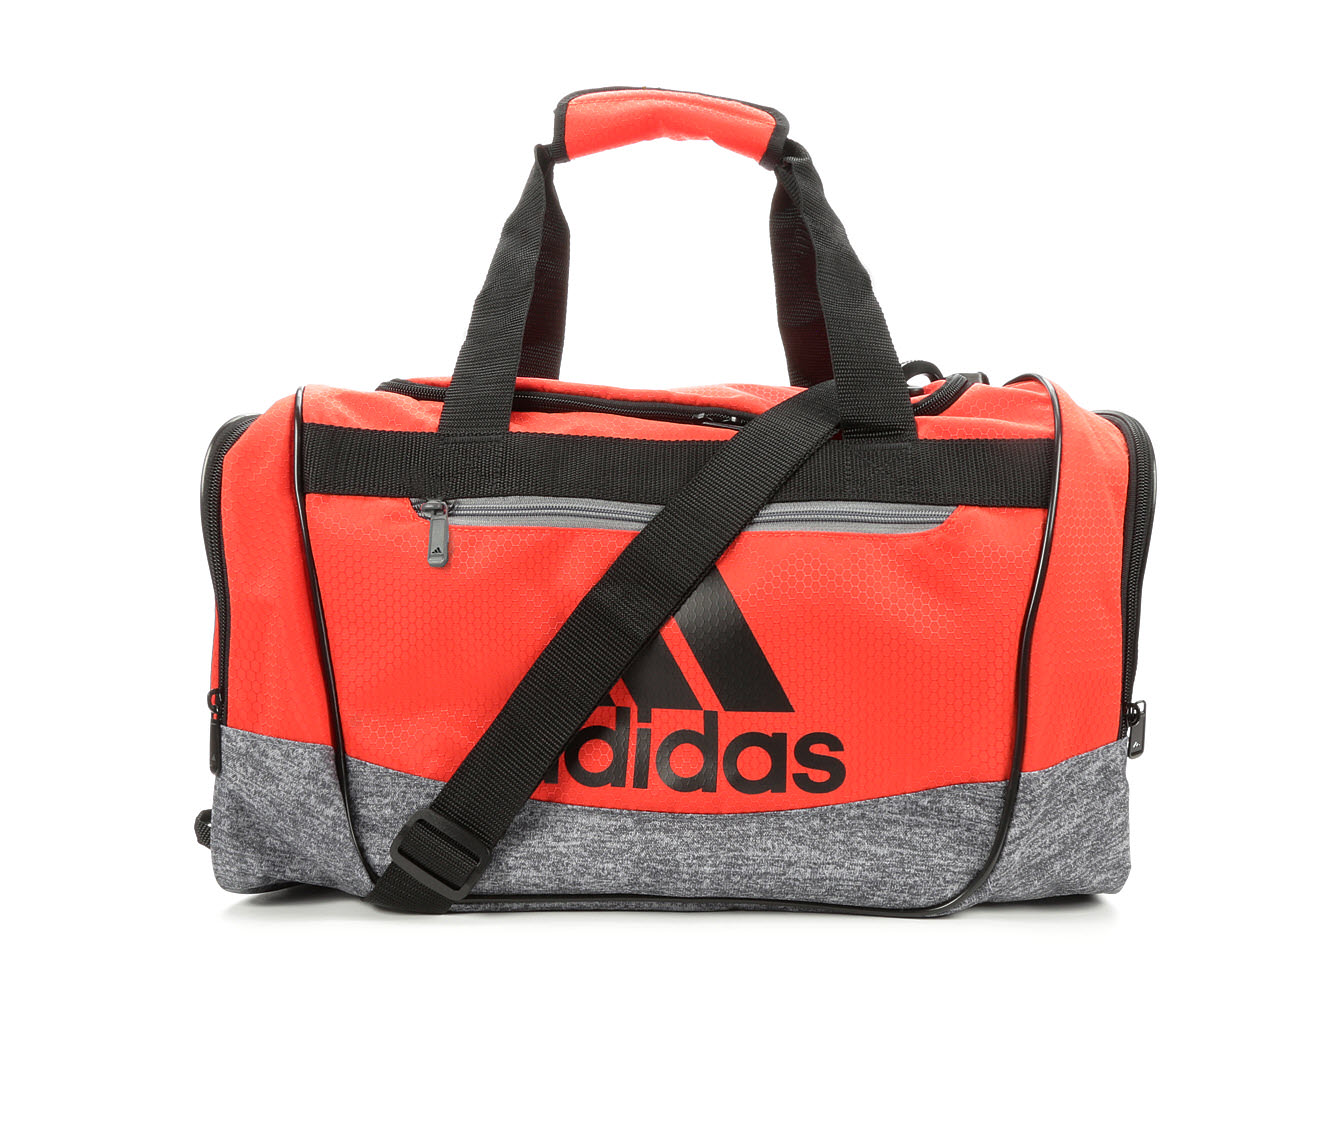 Image of Women's Adidas Defender III Small Duffel Bag (Red - Size UNSZ)